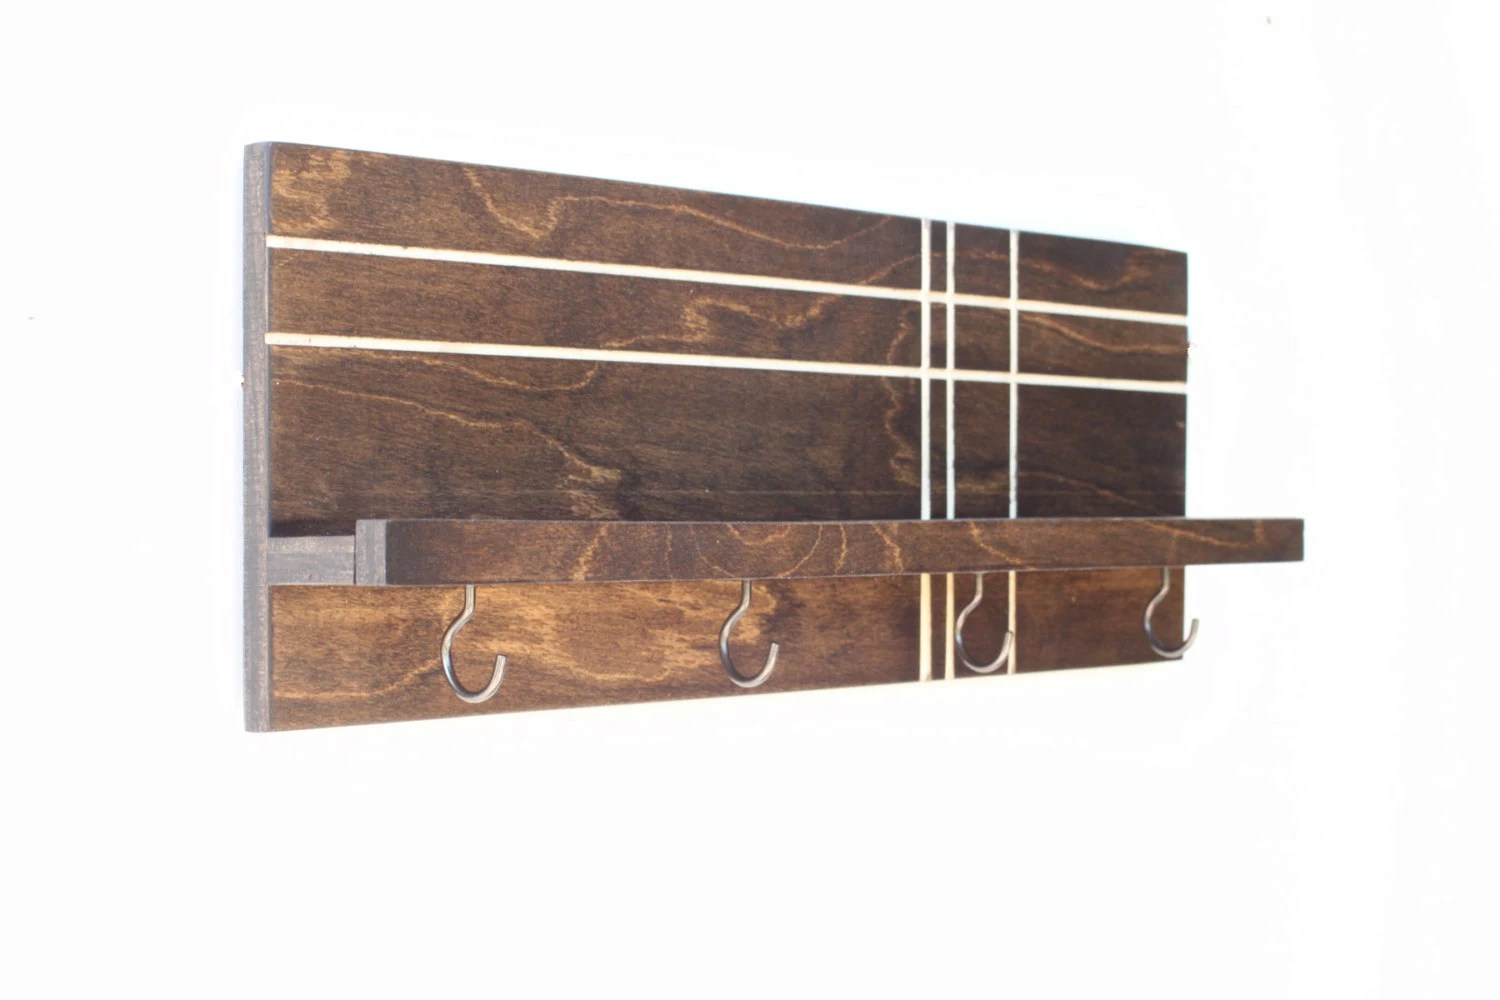 Wooden Key Holder With Shelf Modern Wood Shelf Wooden Shelf Key Holder For Wall Key